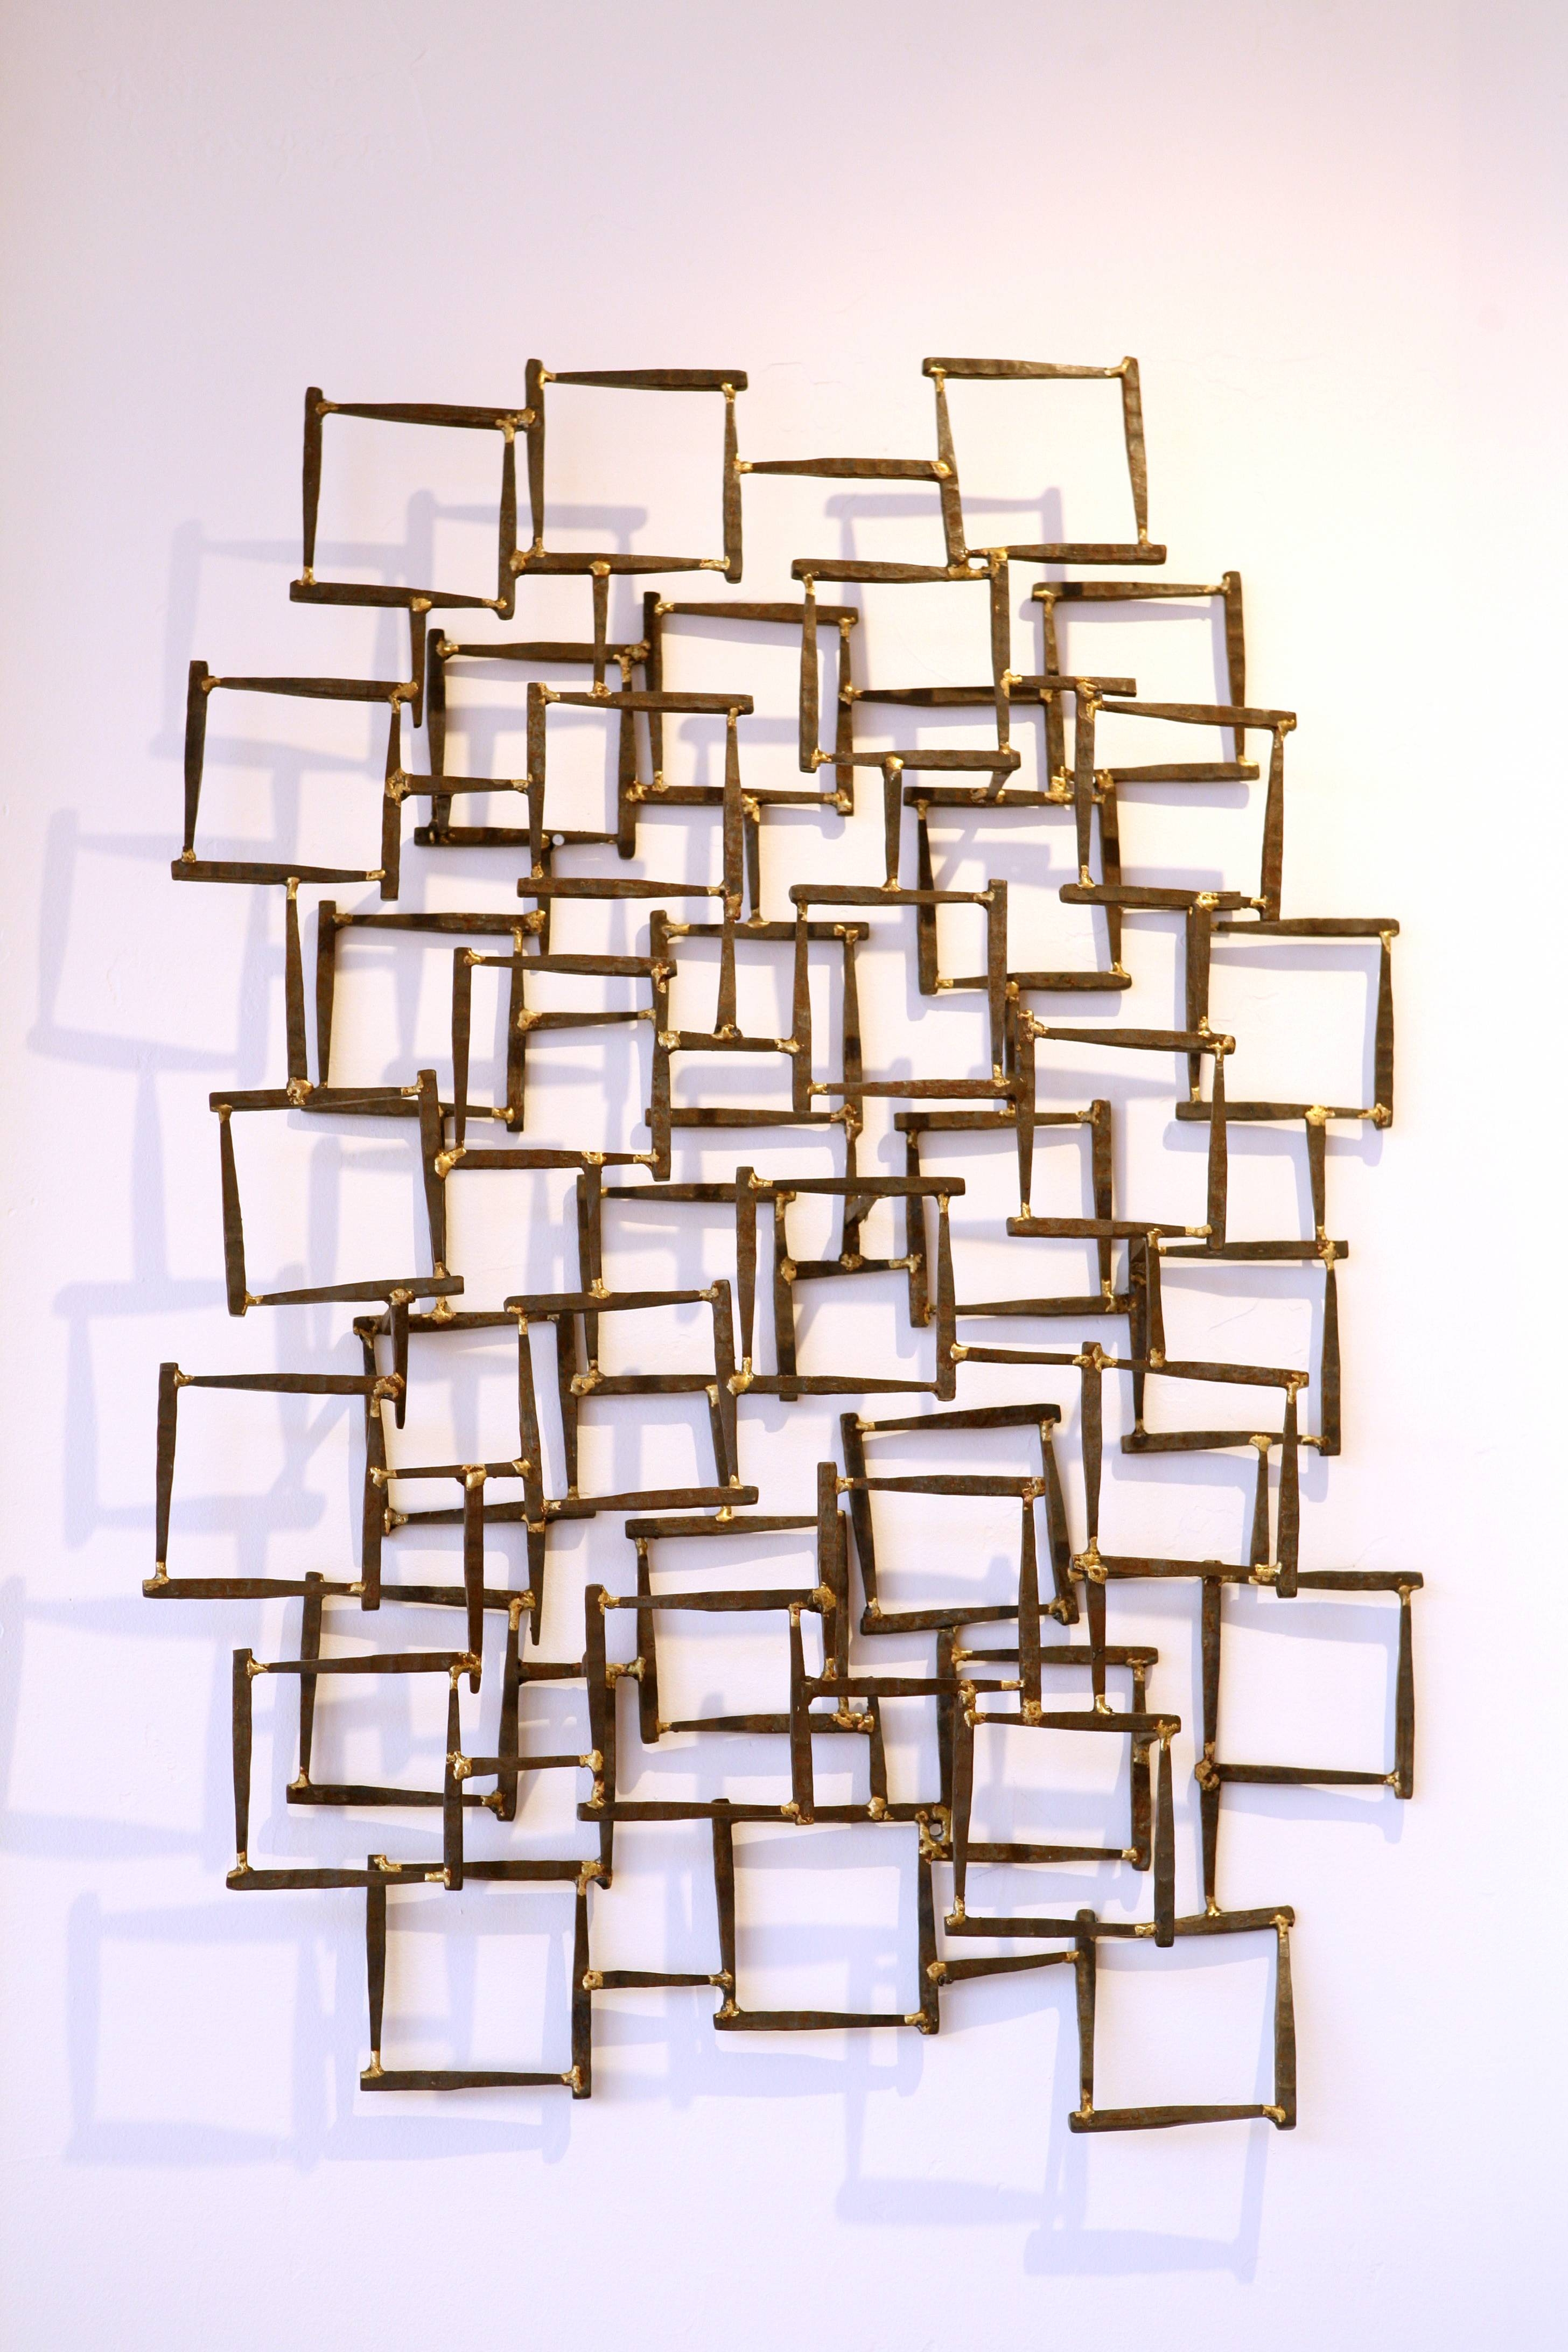 Terrific Mid Century Modern Wall Art Photo Inspiration – Tikspor For 2018 Mid Century Metal Wall Art (View 4 of 20)